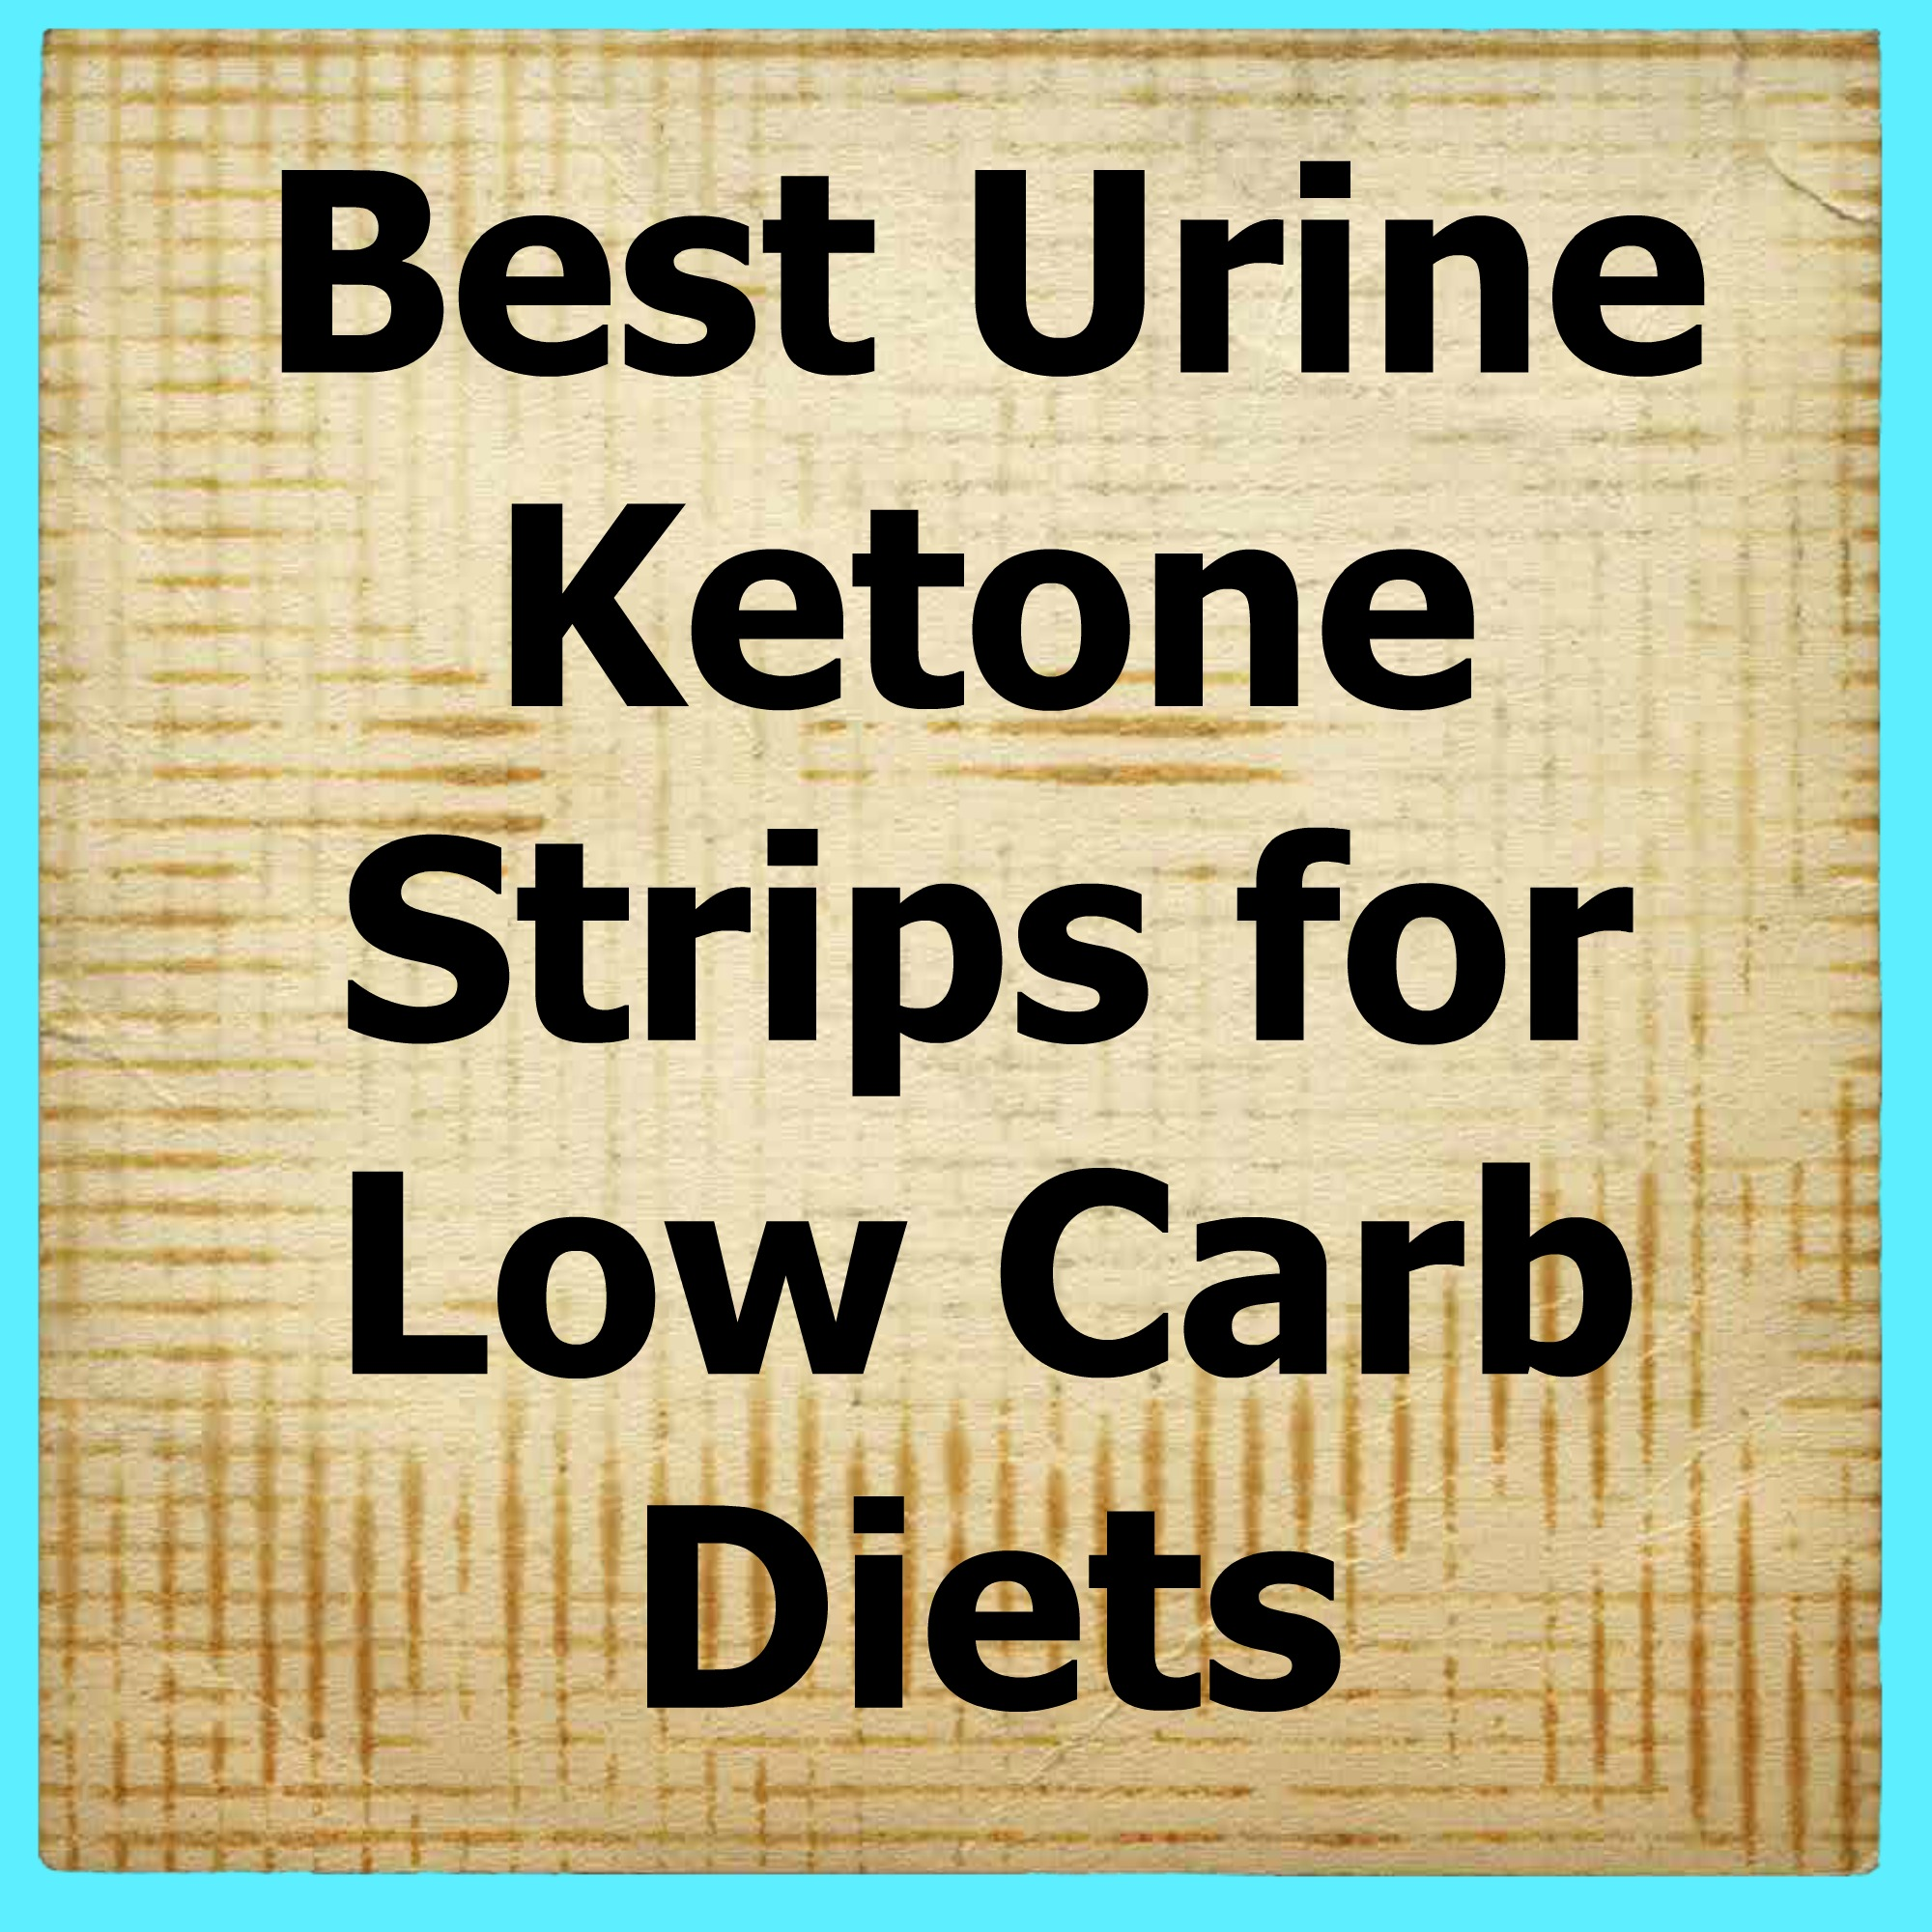 ketone strips for low carb diets